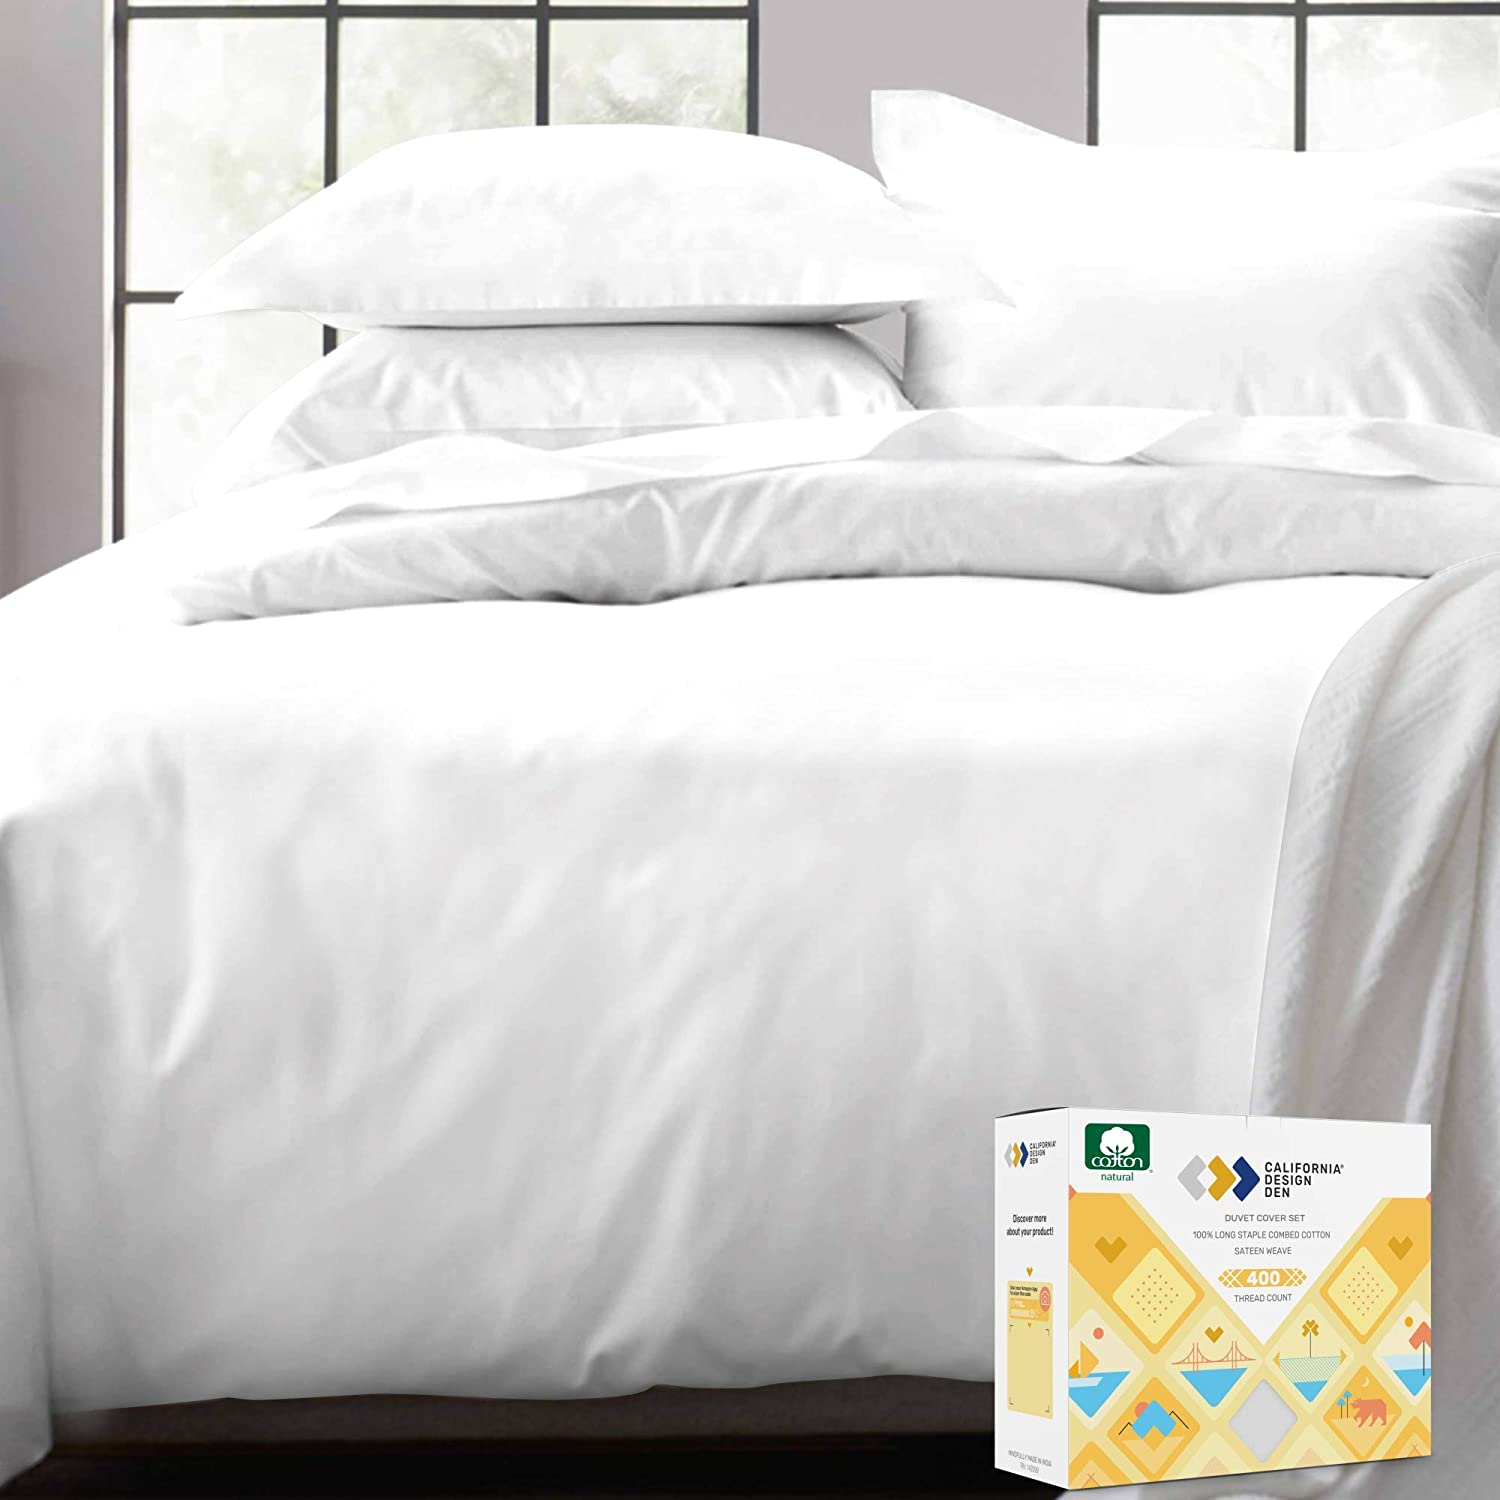 California Design Den 100% Real Cotton Duvet Cover - Premium 400 Thread Count, Comforter Cover, Smooth Sateen Weave, Button Closure and Corner Ties (1 Piece, Pure White, Full/Queen): Home & Kitchen